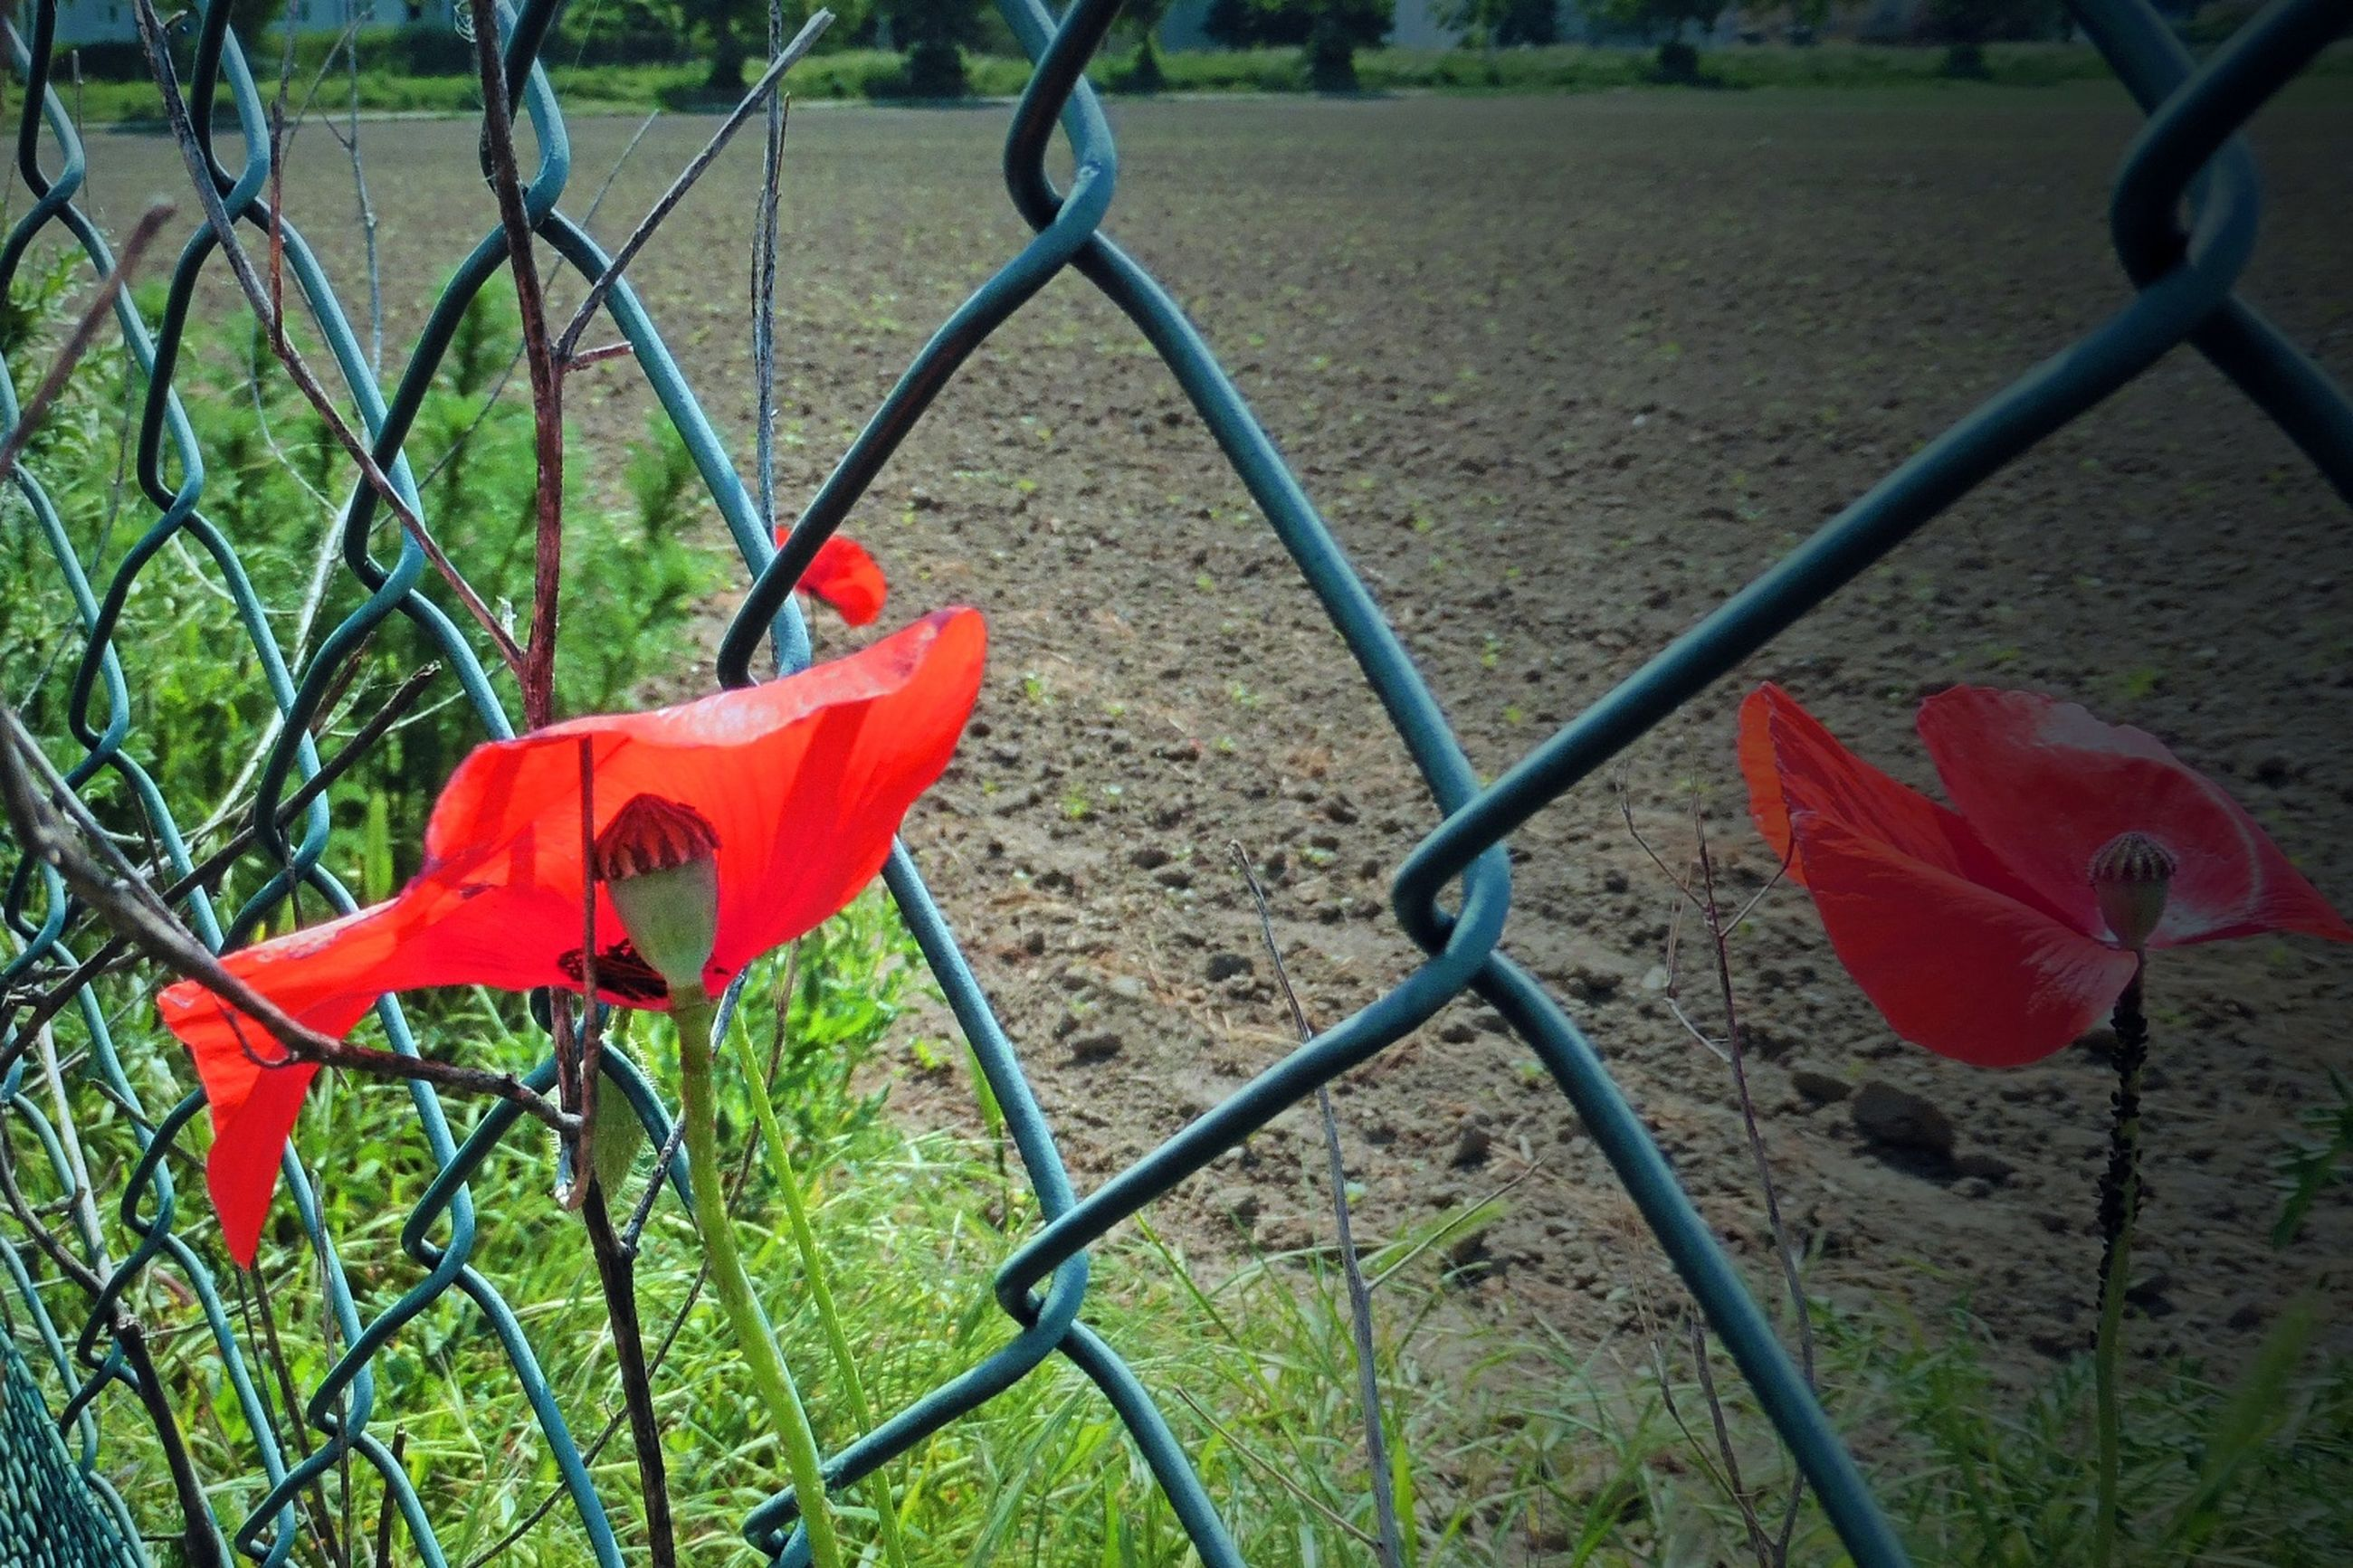 red, fence, chainlink fence, flower, plant, growth, protection, nature, safety, field, metal, fragility, beauty in nature, day, grass, security, park - man made space, close-up, leaf, no people